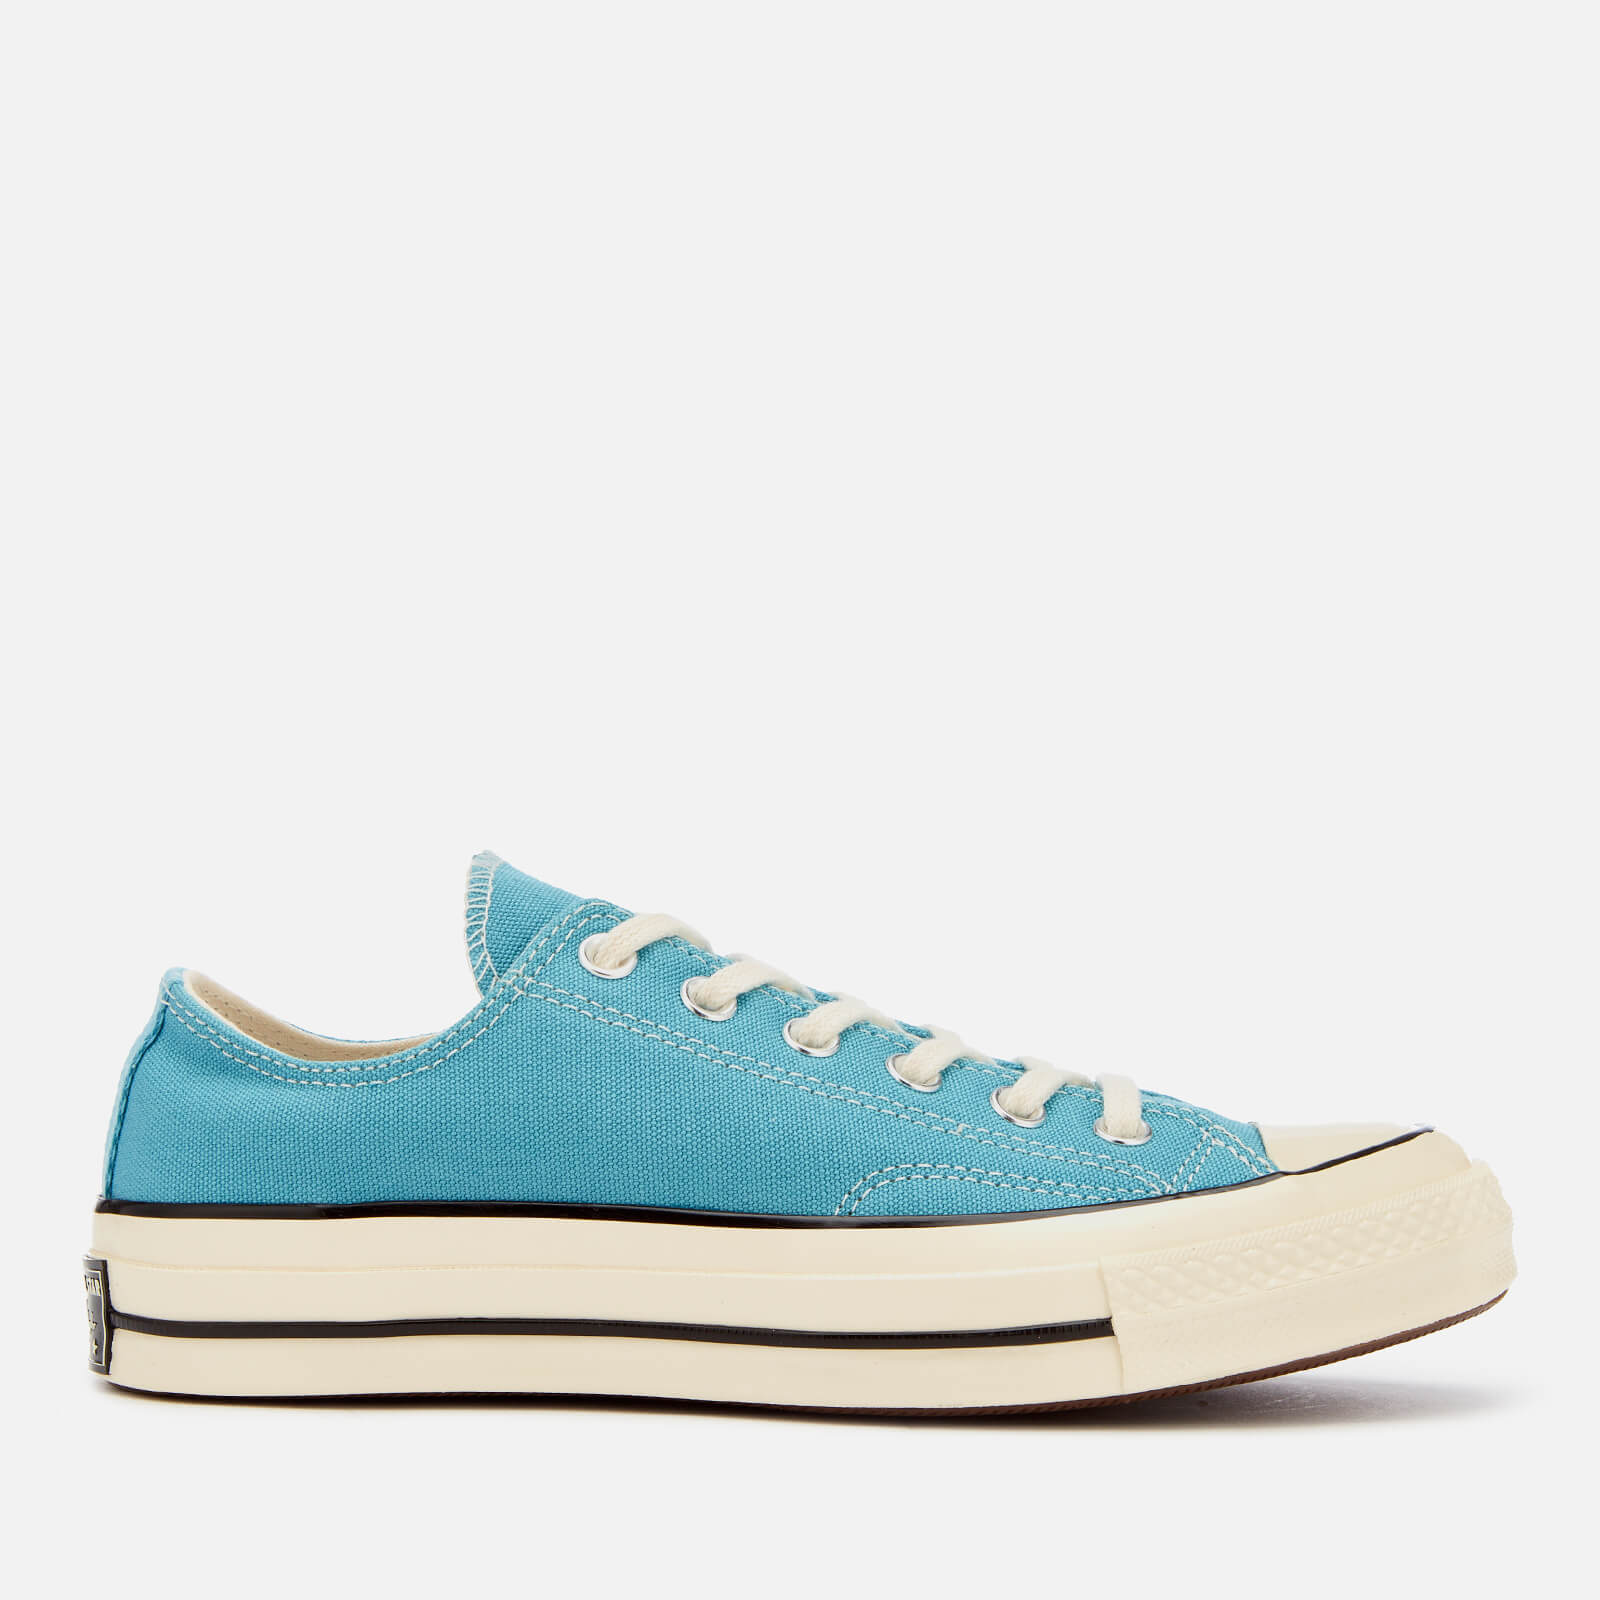 e1155bed474e Converse Chuck Taylor All Star  70 Ox Trainers - Shoreline Blue Black Egret  - Free UK Delivery over £50